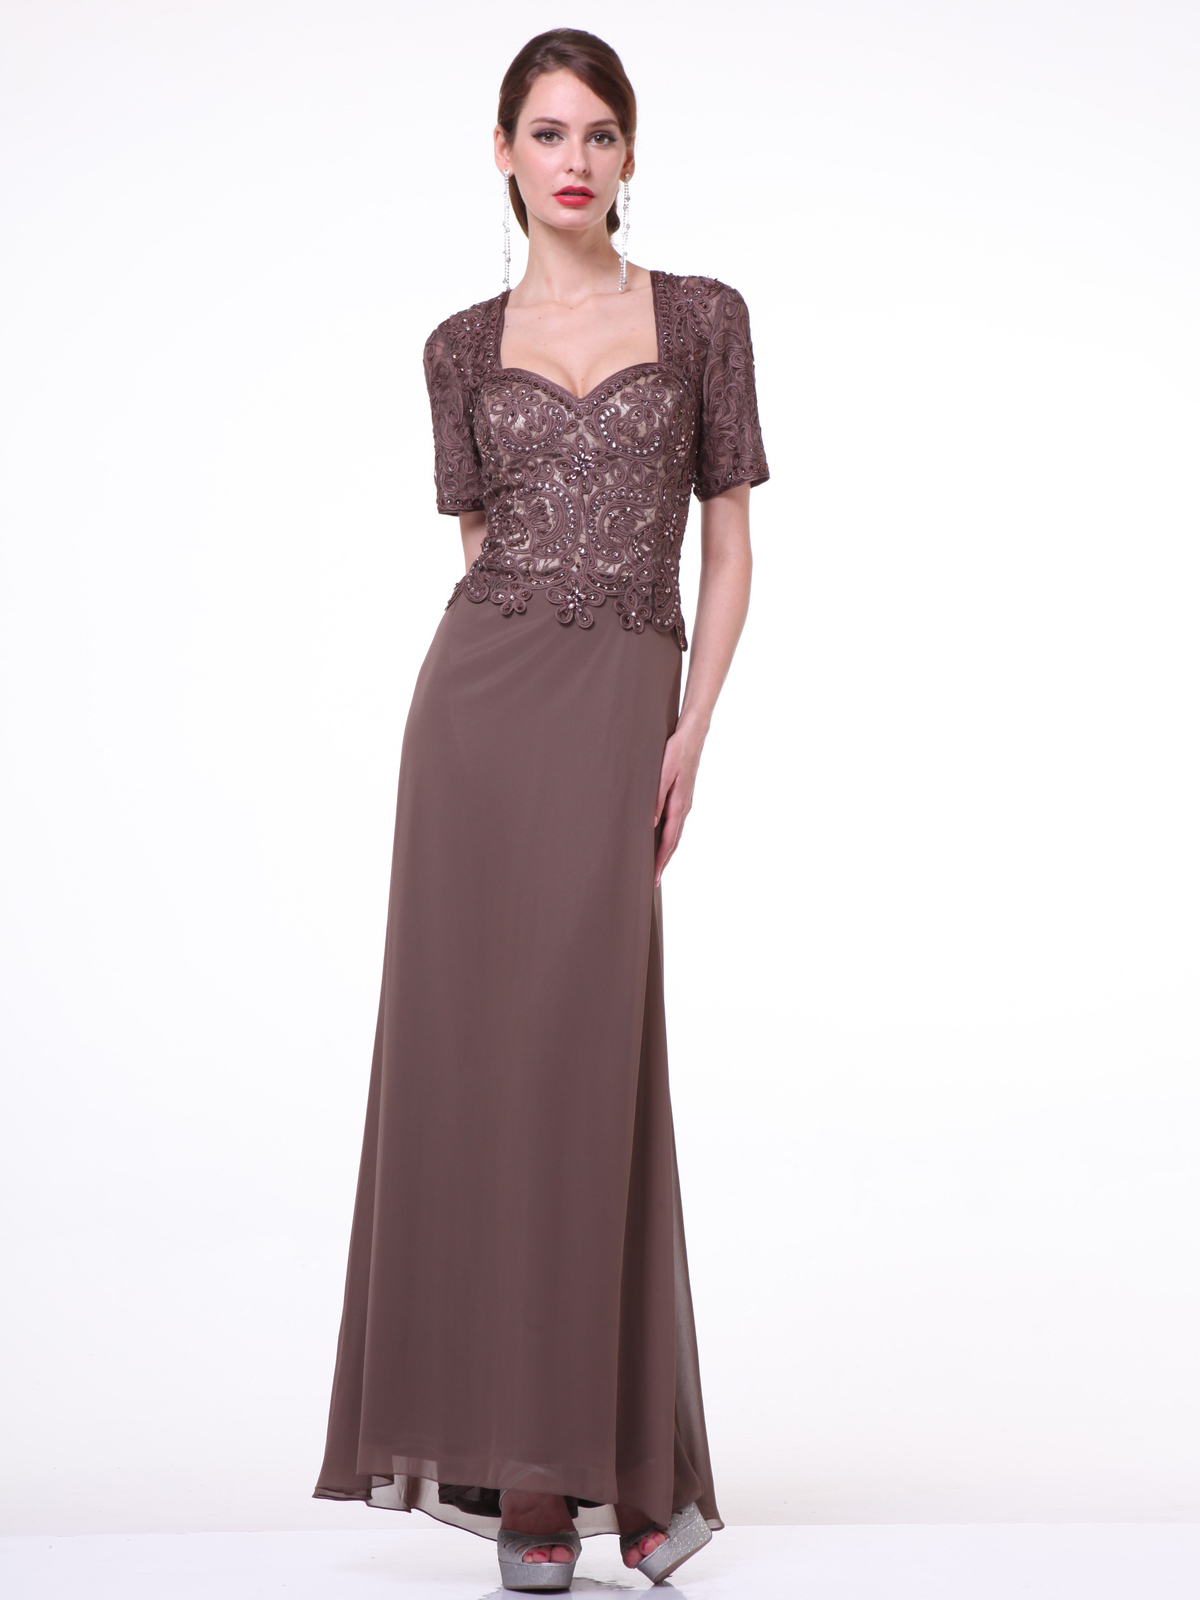 f574ed26e4 CD-1942 Short Sleeves Beaded Chiffon Mother of the Bride Dress - Brown,  Front ...